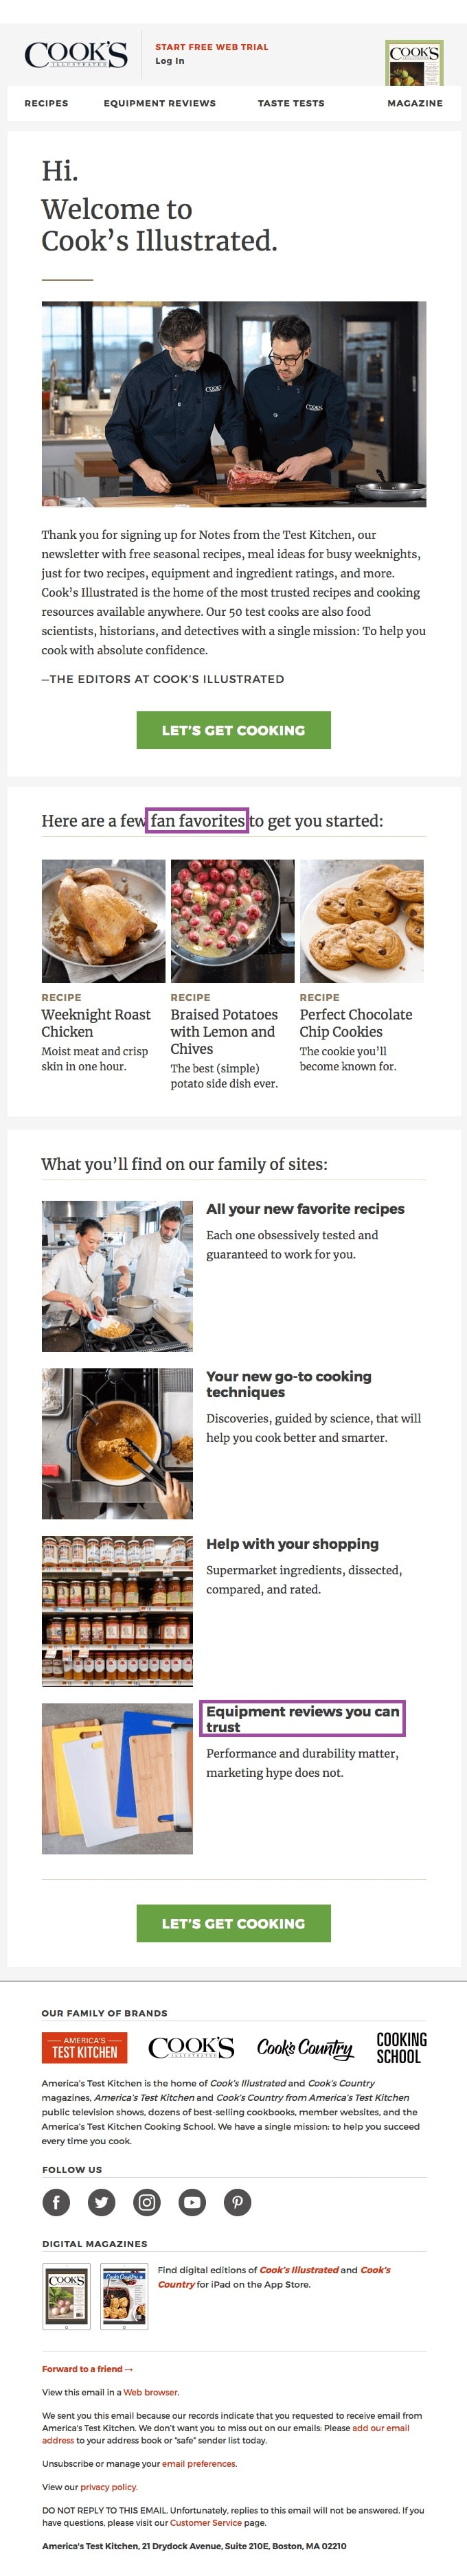 Some of the best examples of non-sales-related user-generated content comes in the form of recipes shared amongst the culinary industry.